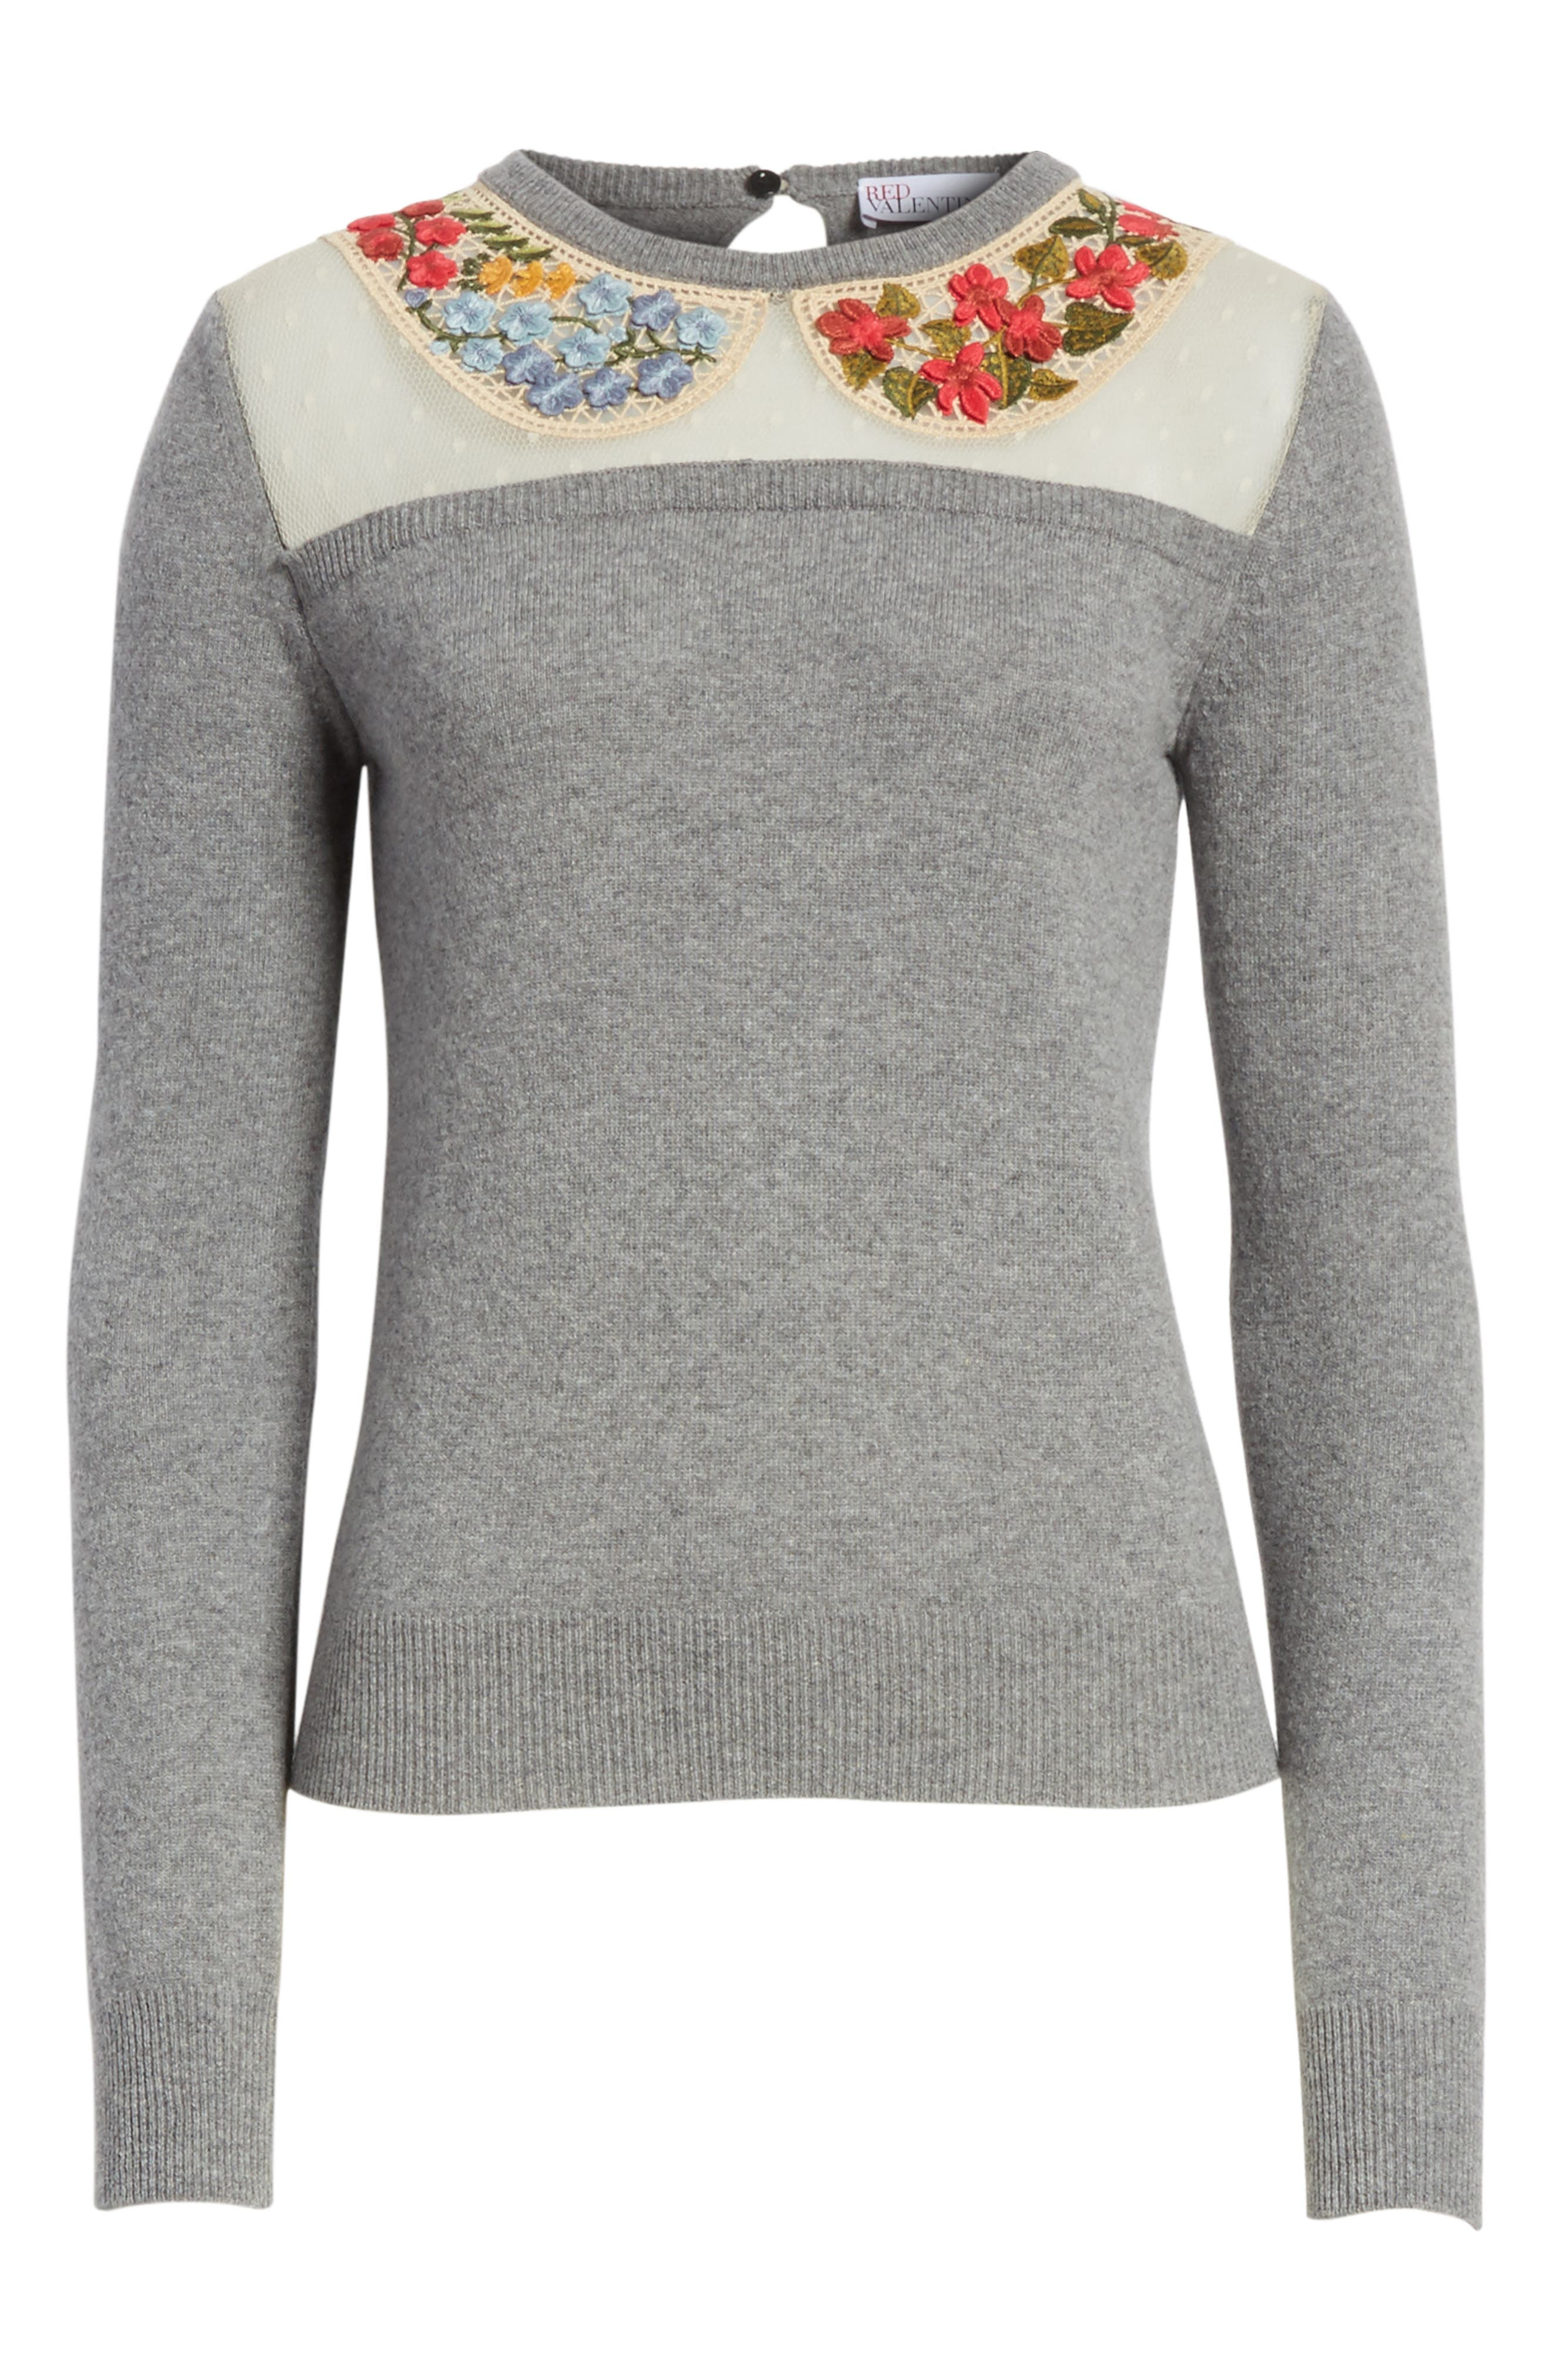 Macramé & Floral Embellished Wool Sweater,                             Alternate thumbnail 6, color,                             030